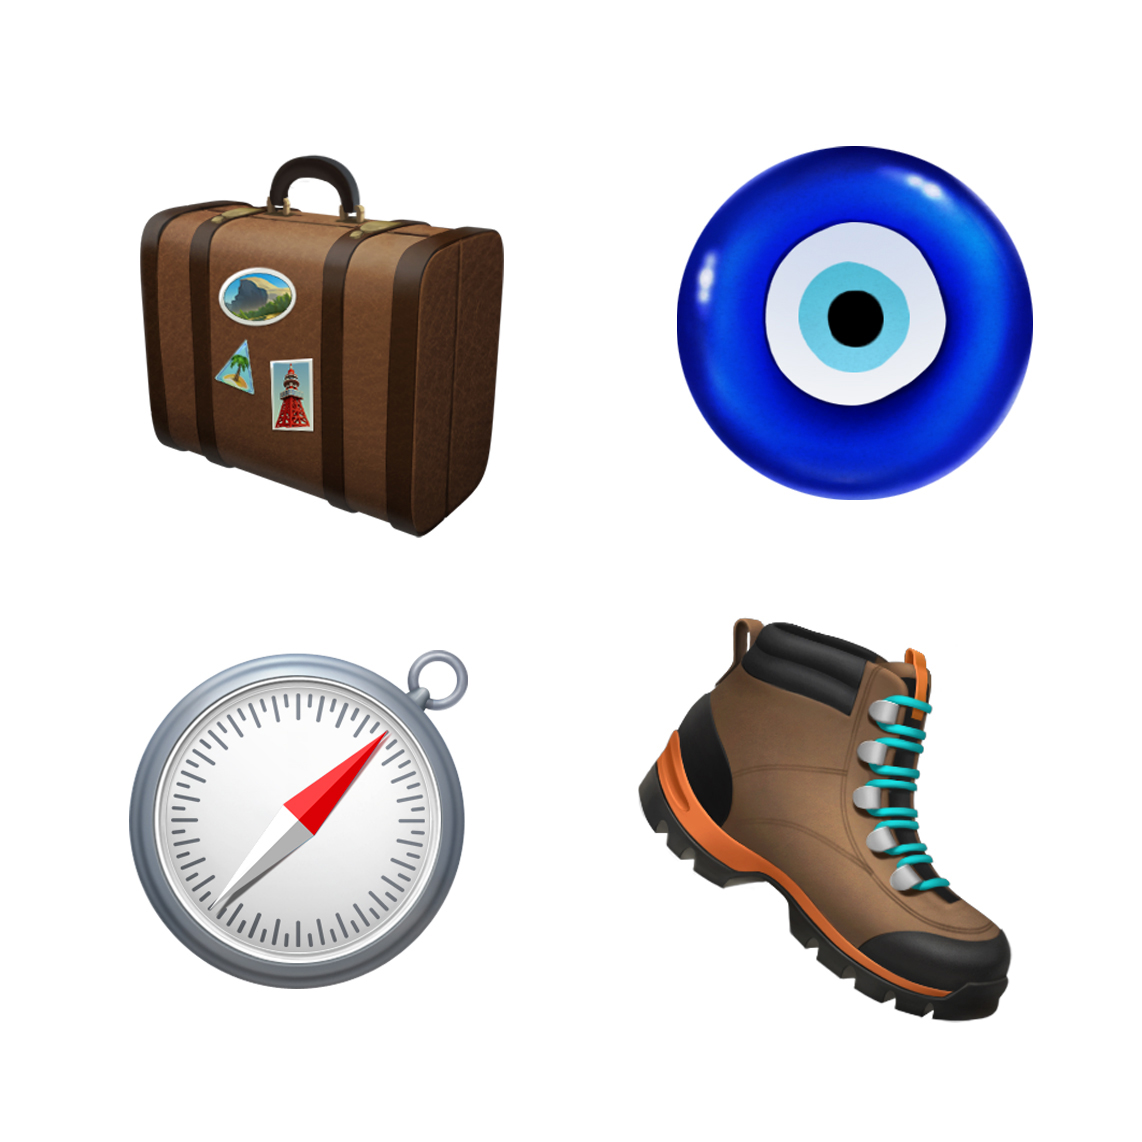 apple_emoji11_02